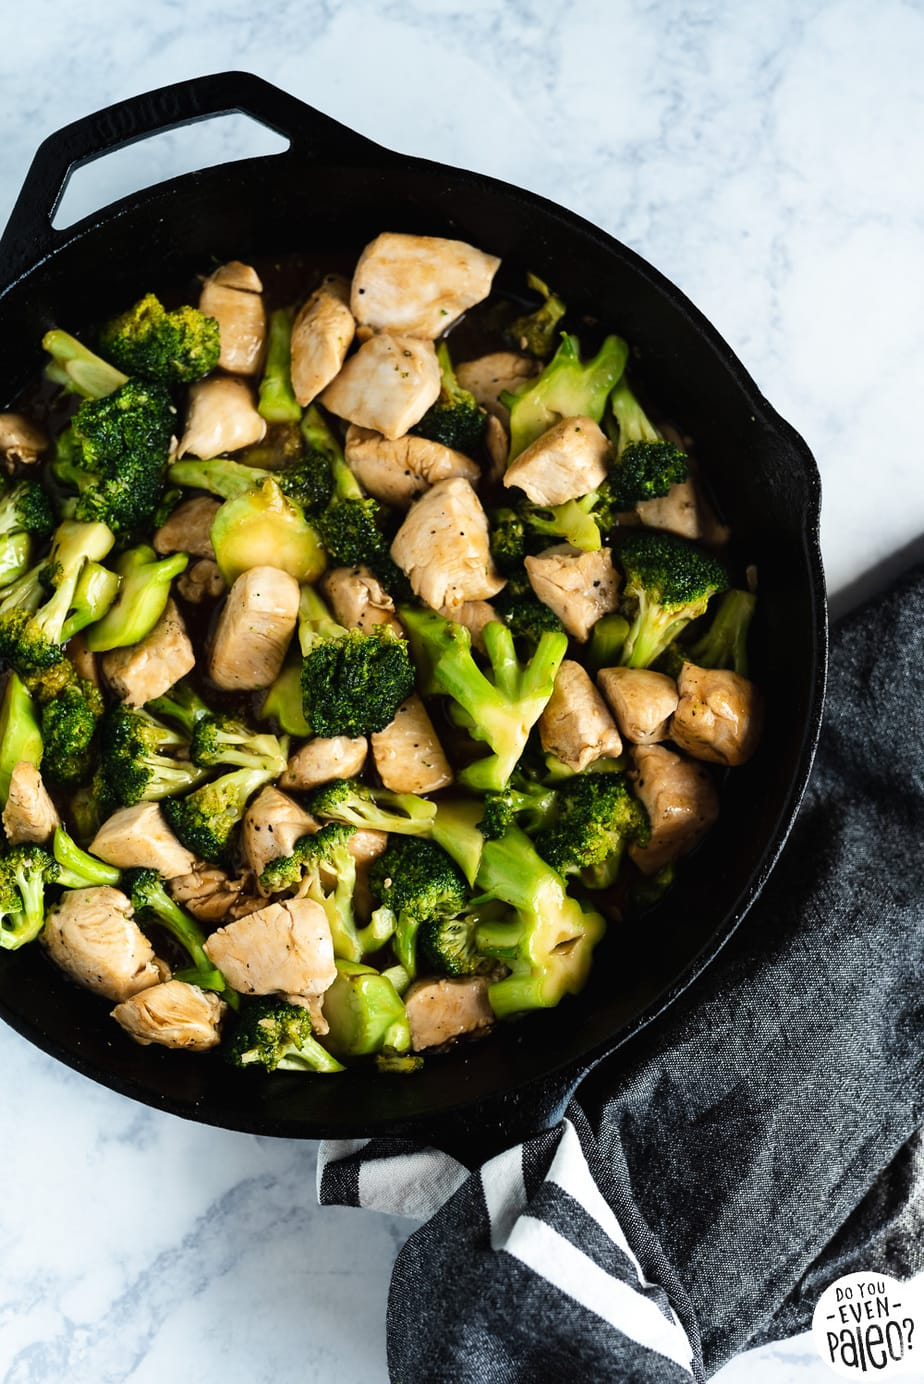 Quick & Easy Paleo Chicken & Broccoli Stir Fry Recipe in a large skillet by DoYouEvenPaleo.net